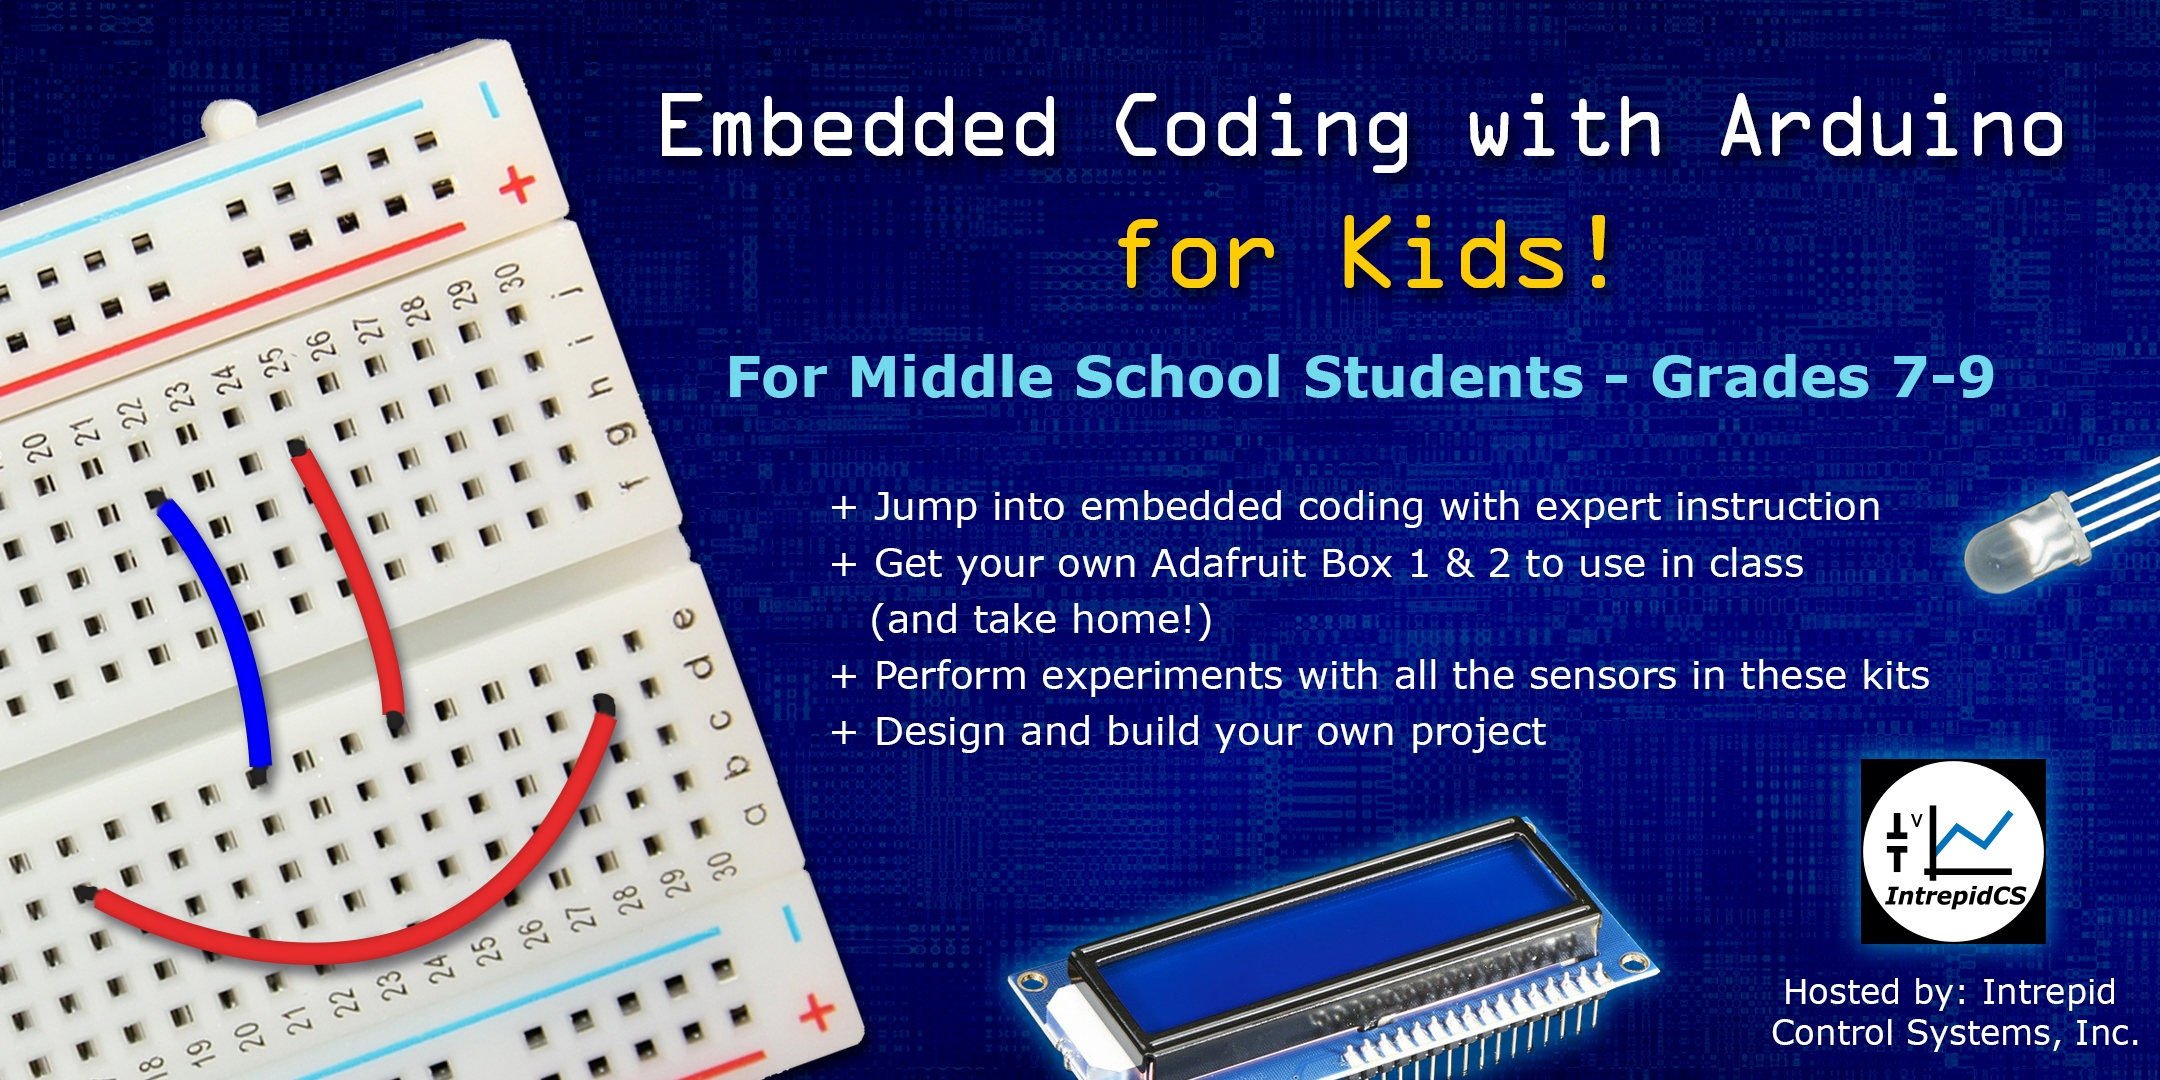 Embedded Coding for Kids Announcement